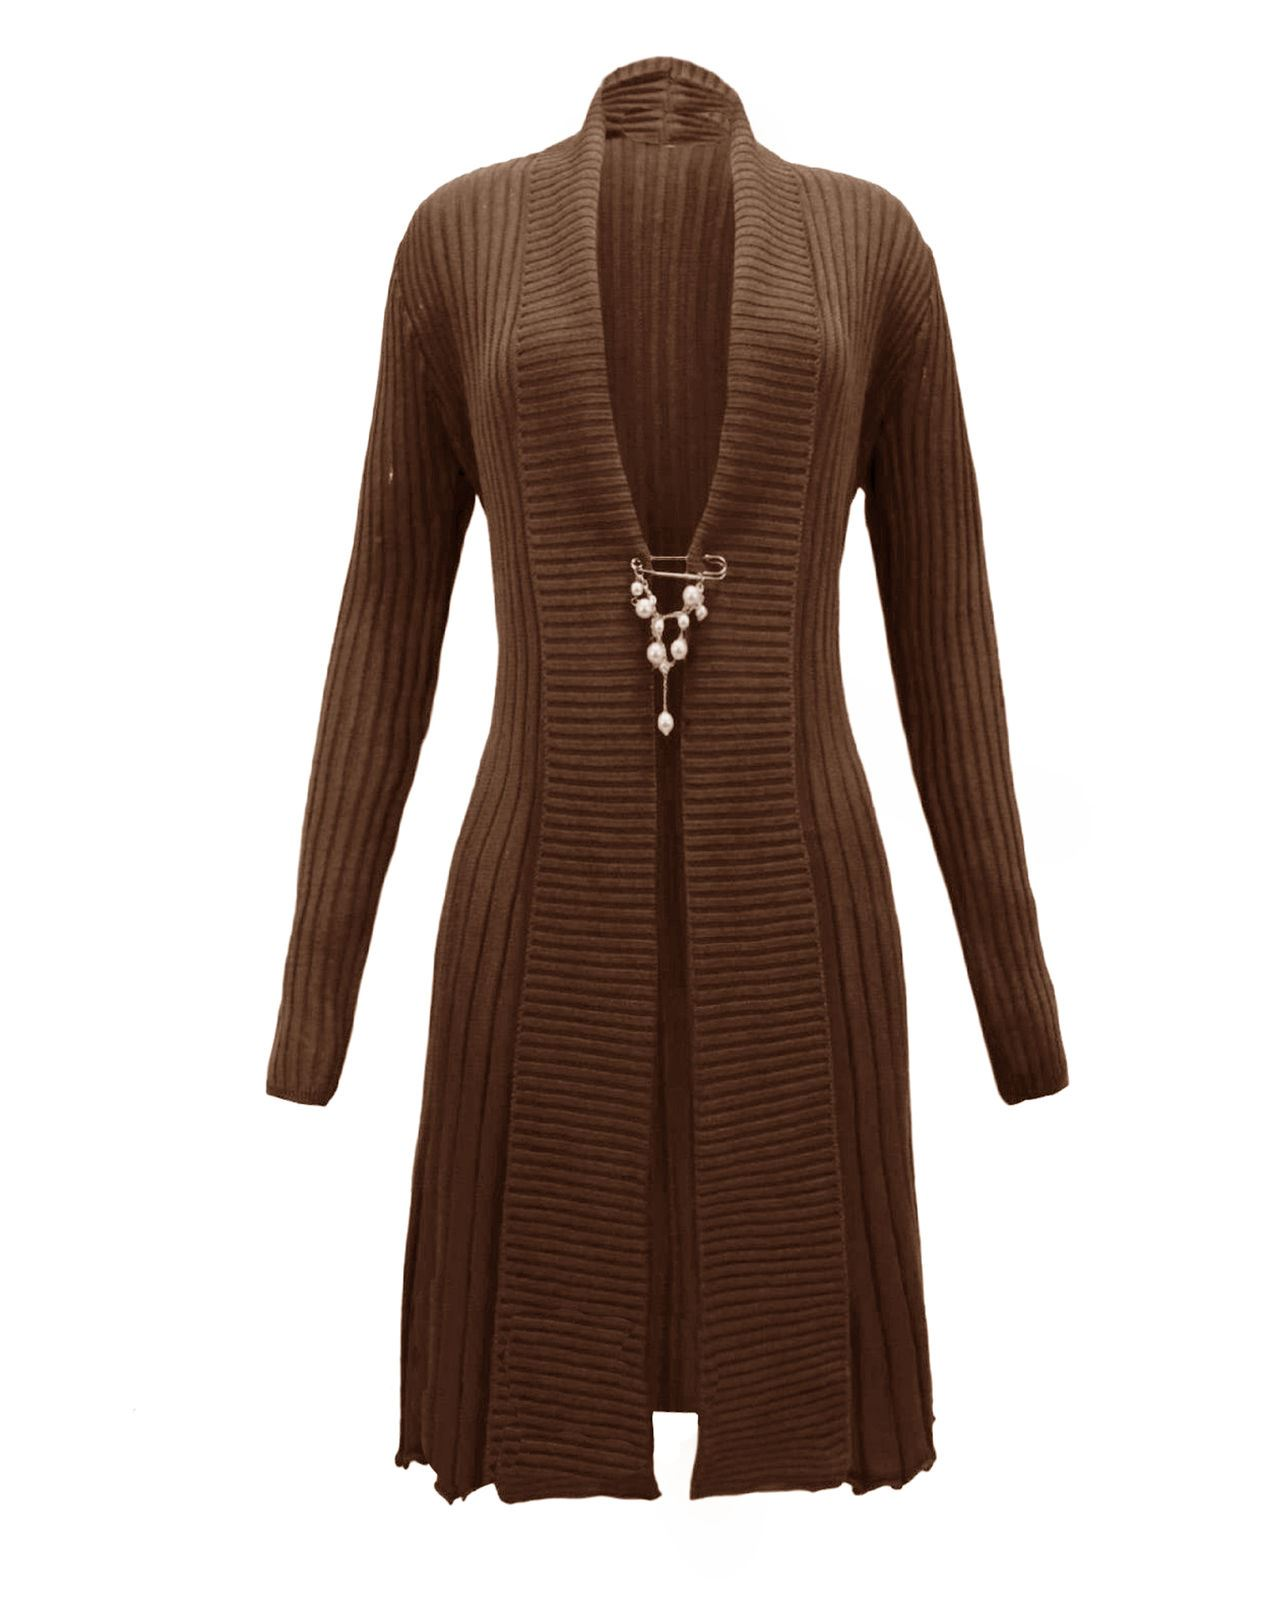 Womens Long Black Dress Cardigan Dress Womens Bag Womens Gloves Womens Black Hat Womens Plaid Scarf Womens Red Scarf Womens Tights Womens Watch Womens Jumpsuit Womens Black Jumpsuit Womens White Jumpsuit Colorful Cardigan Long Size T Shirt Long Sleeve High Waist Dress Henley Long Sleeve Shirt Maxi Long Red Dress Long Rhombus Spliced Long Sleeve.